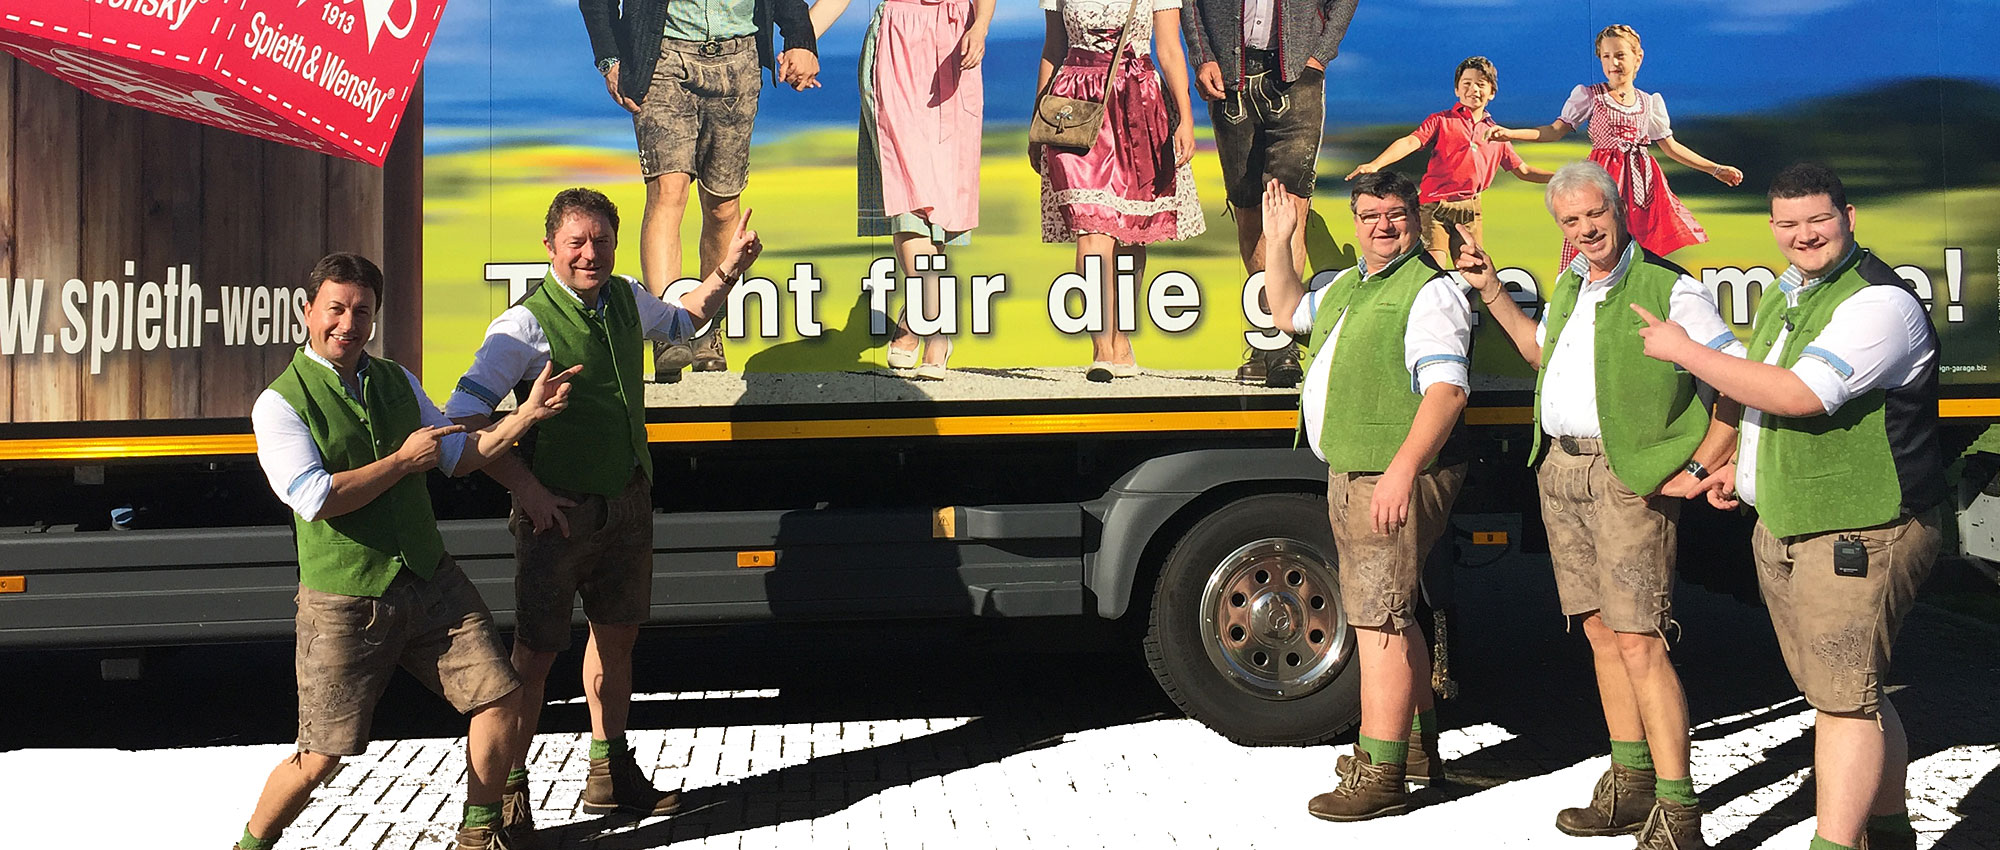 Die Schmalzler on tour - Tourdaten